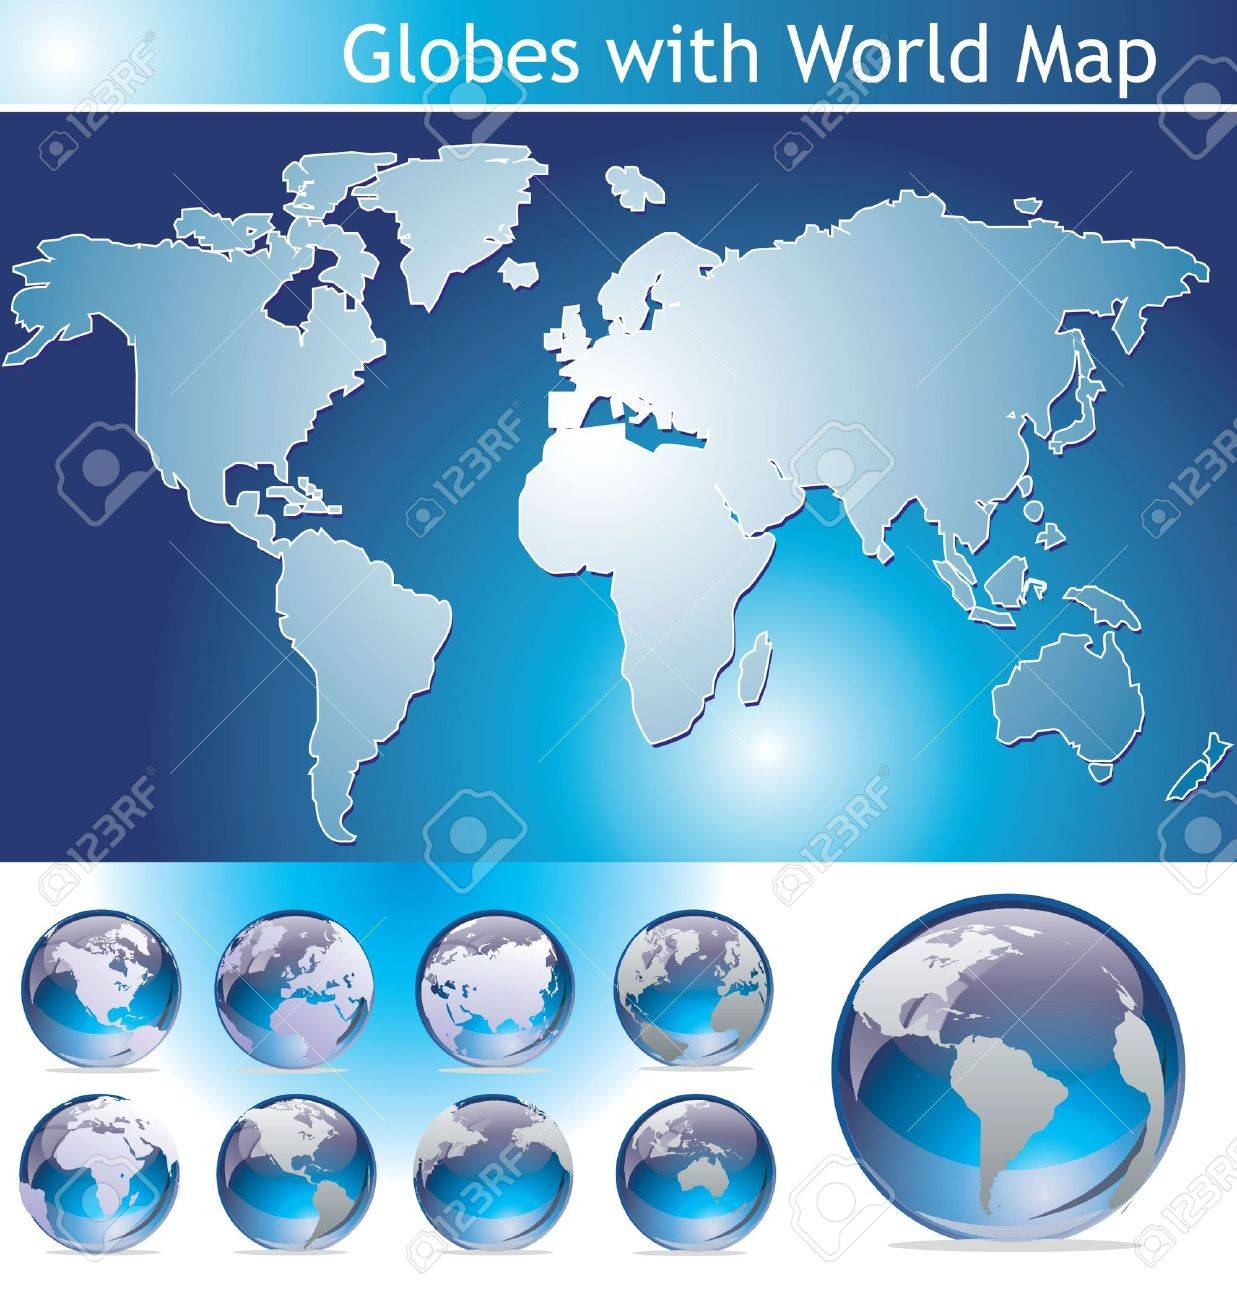 Globes with World Map Stock Vector - 10255494